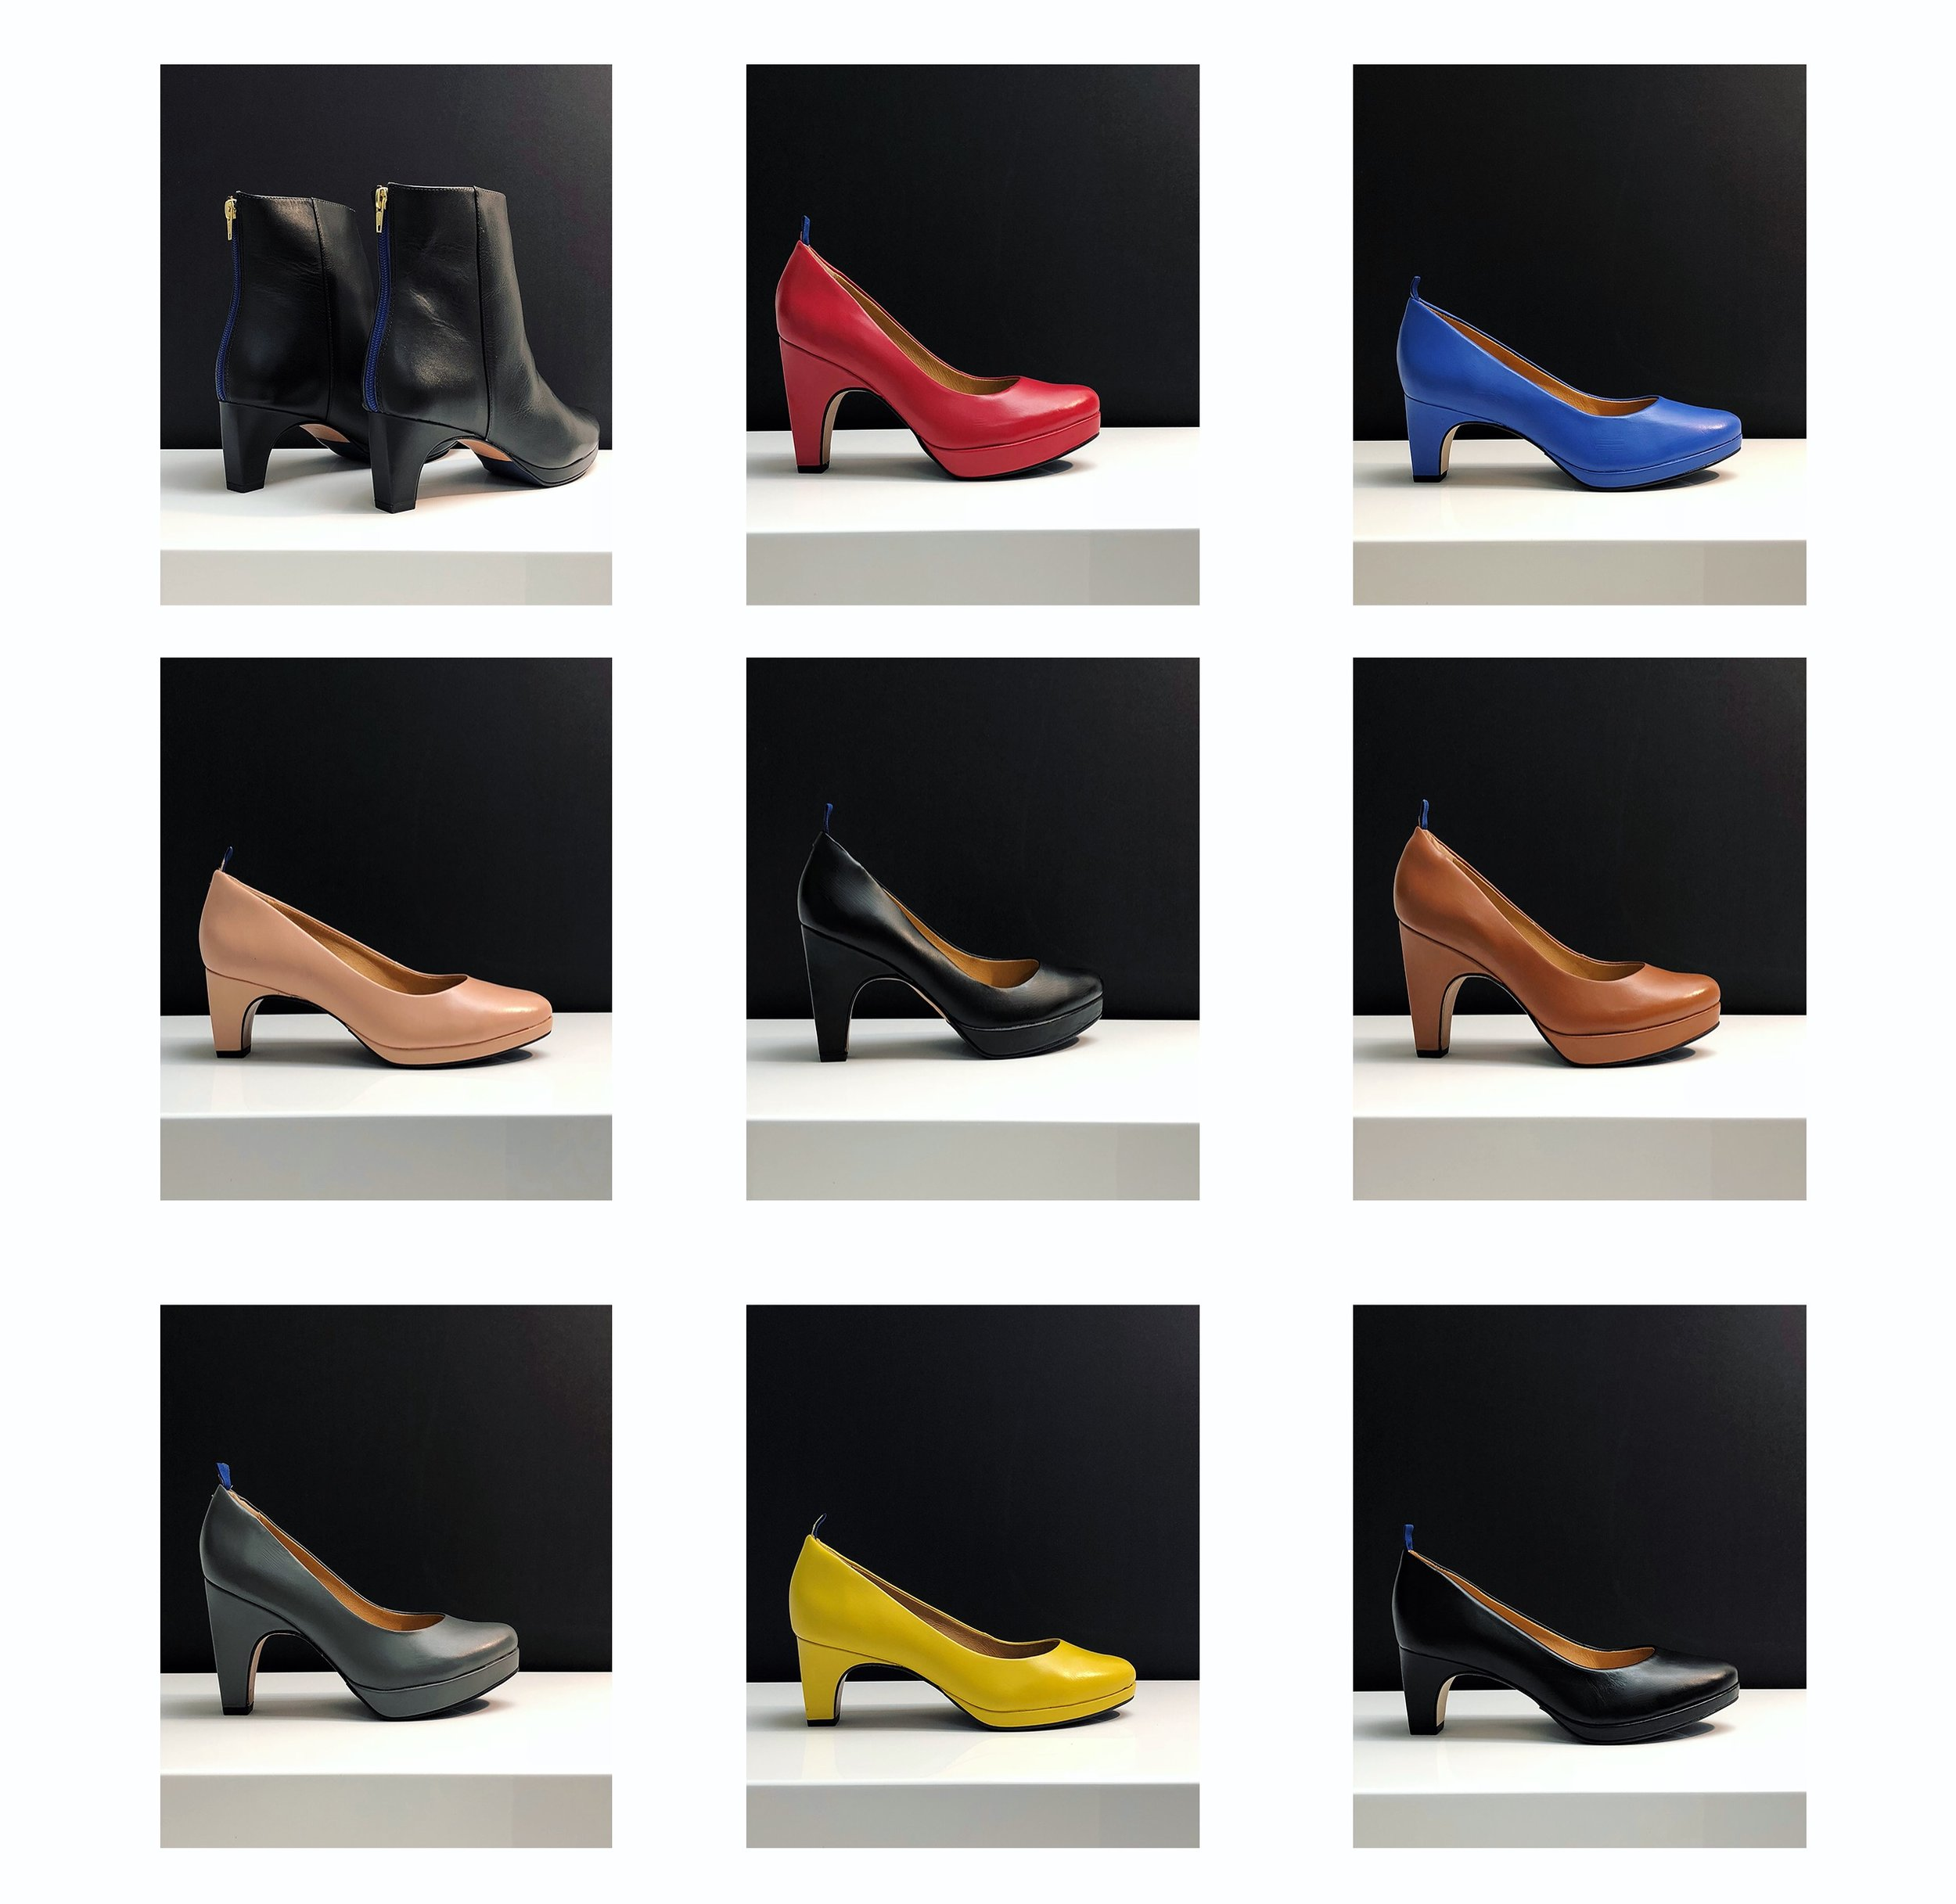 Need any assistance with the fit of your shoes or would you like to send some feedback? Email hi@drLizashoes.com - We are always trying to improve and make the perfect heels for you, so good or bad we would love to hear!